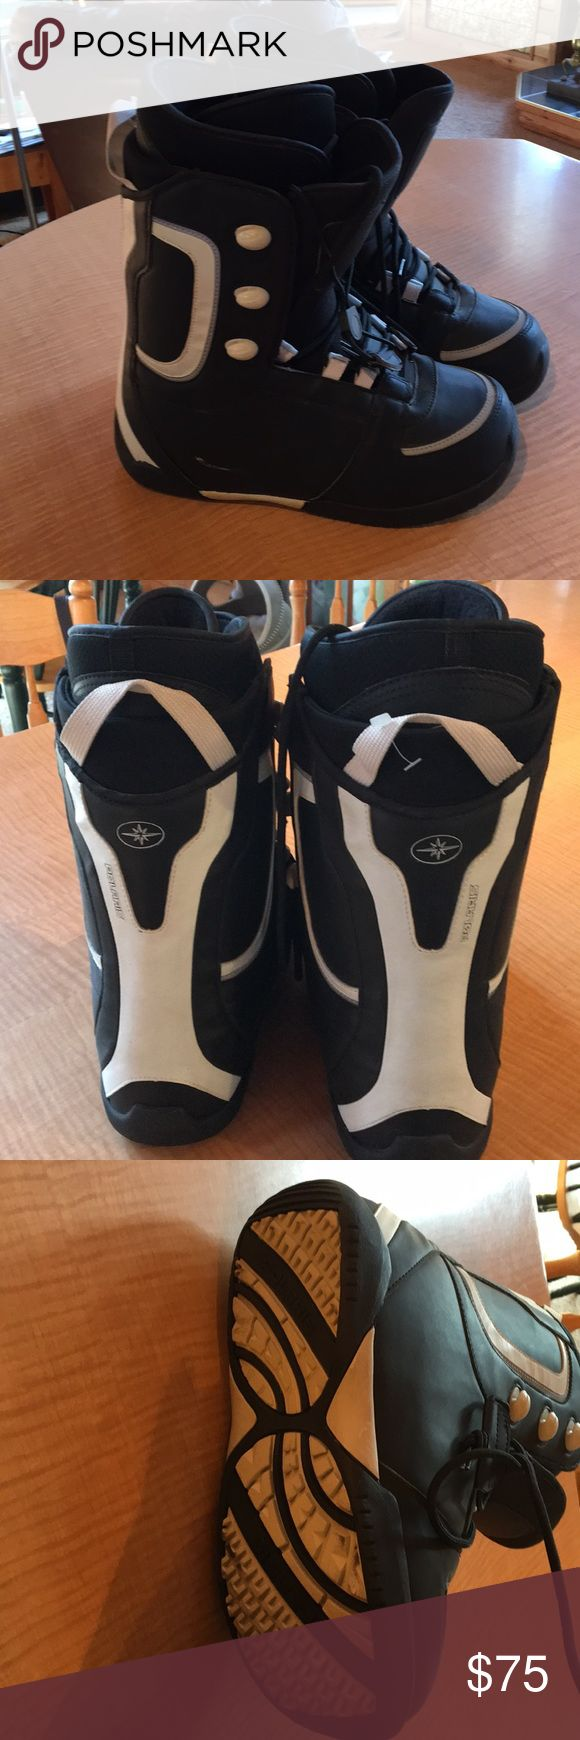 Men's BRAND new snowmobile boots! Never been worn Polaris snowmobile boots polaris Shoes Rain & Snow Boots